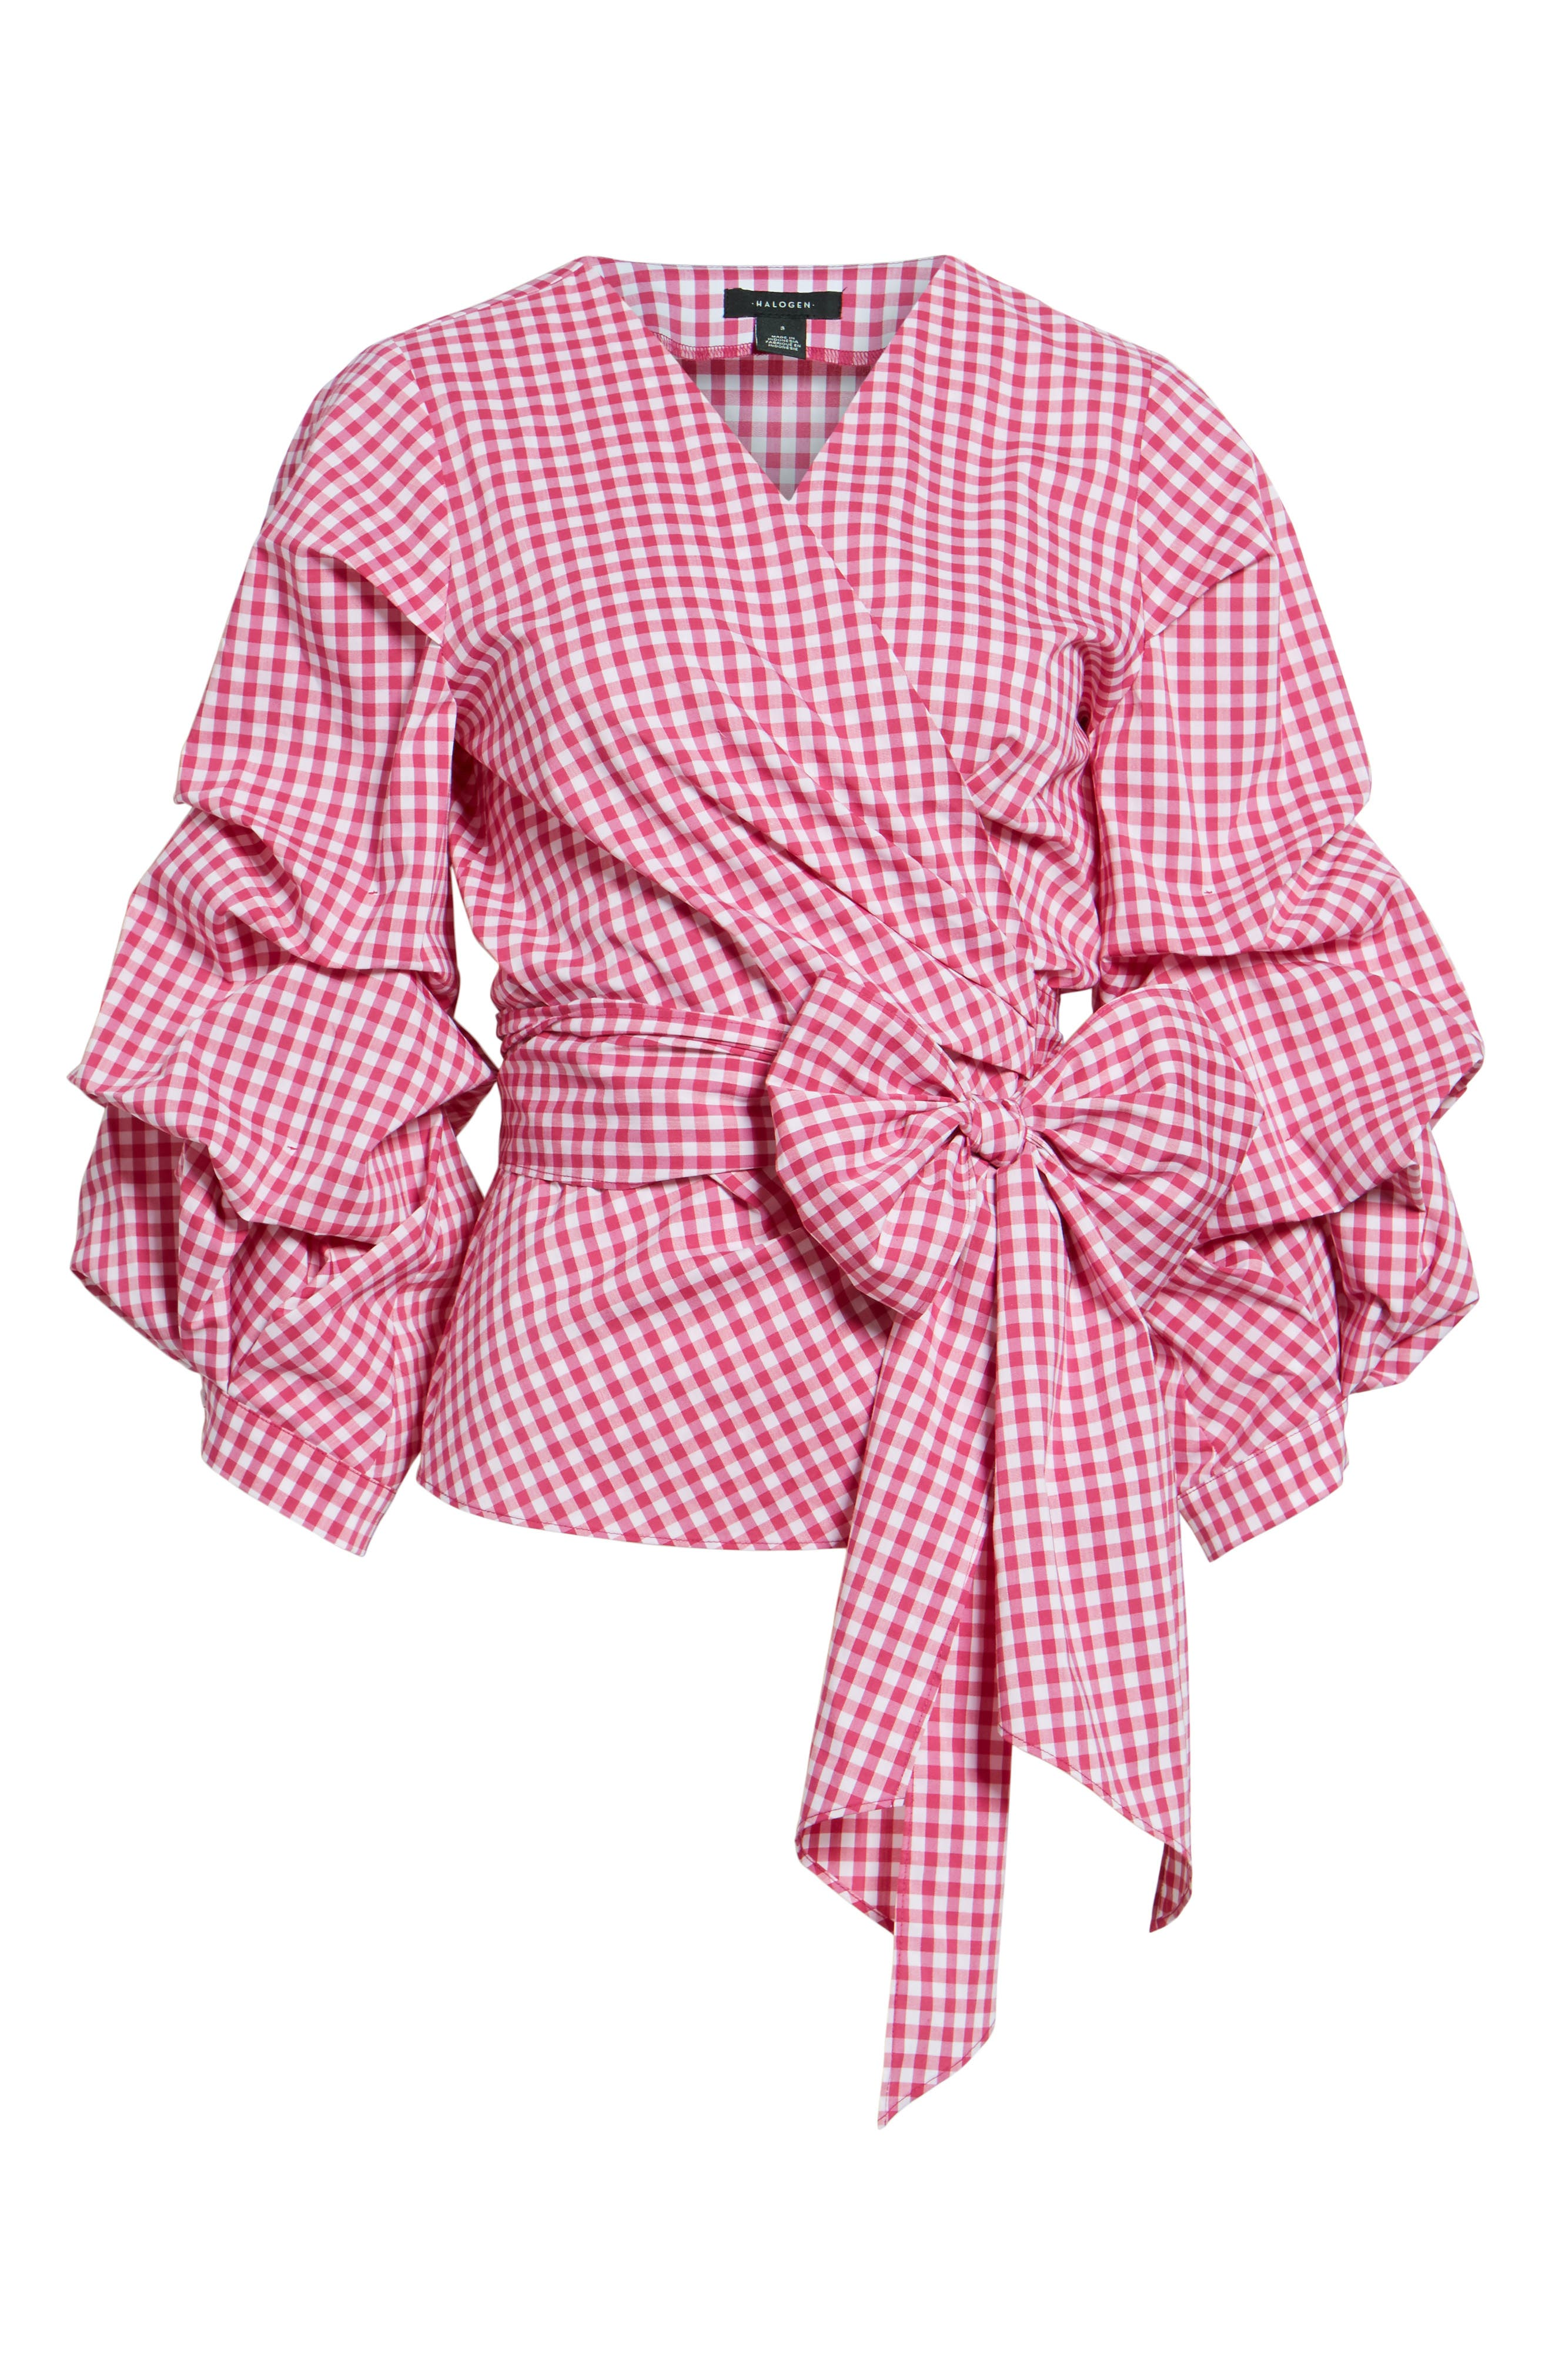 Pintuck Blouson Sleeve Wrap Top,                             Alternate thumbnail 6, color,                             Pink- White Gingham